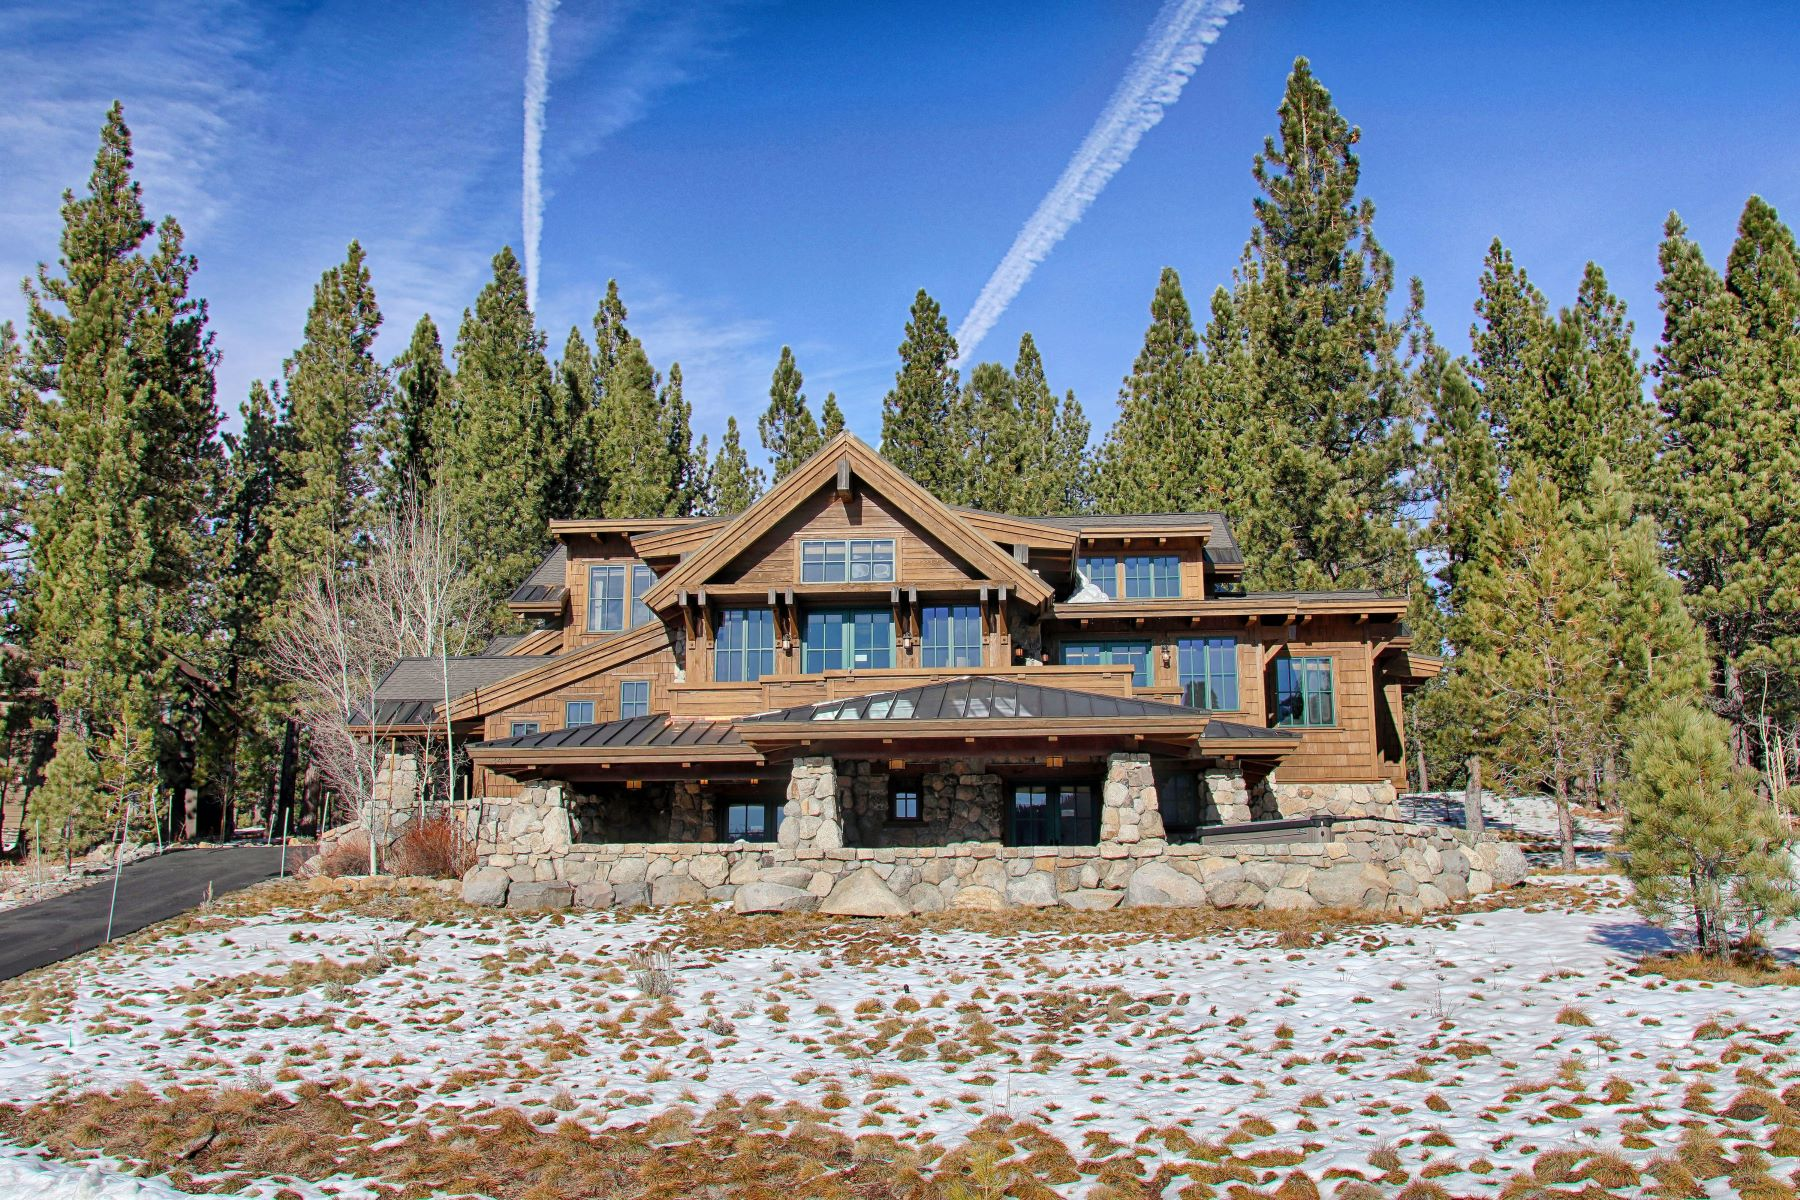 Single Family Homes for Active at 340 Elias Baldwin, Truckee, California 96161 340 Elias Baldwin Truckee, California 96161 United States